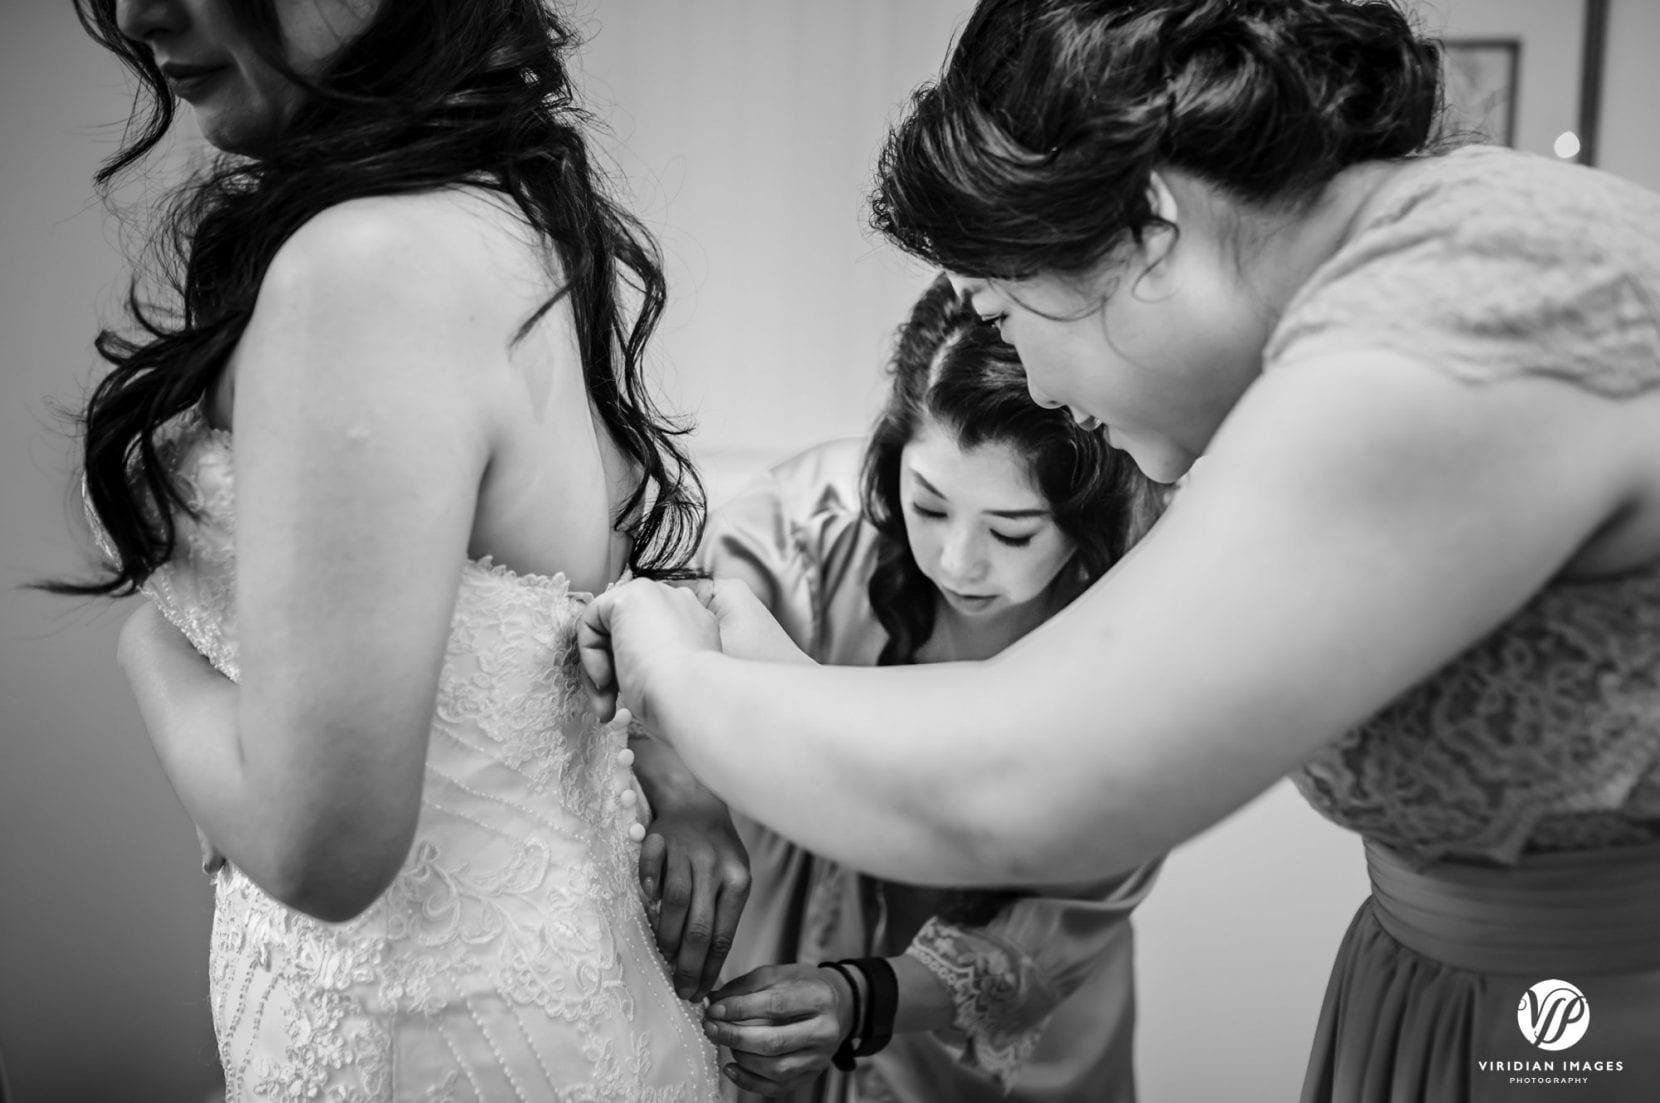 bridesmaids helping bride wedding dress